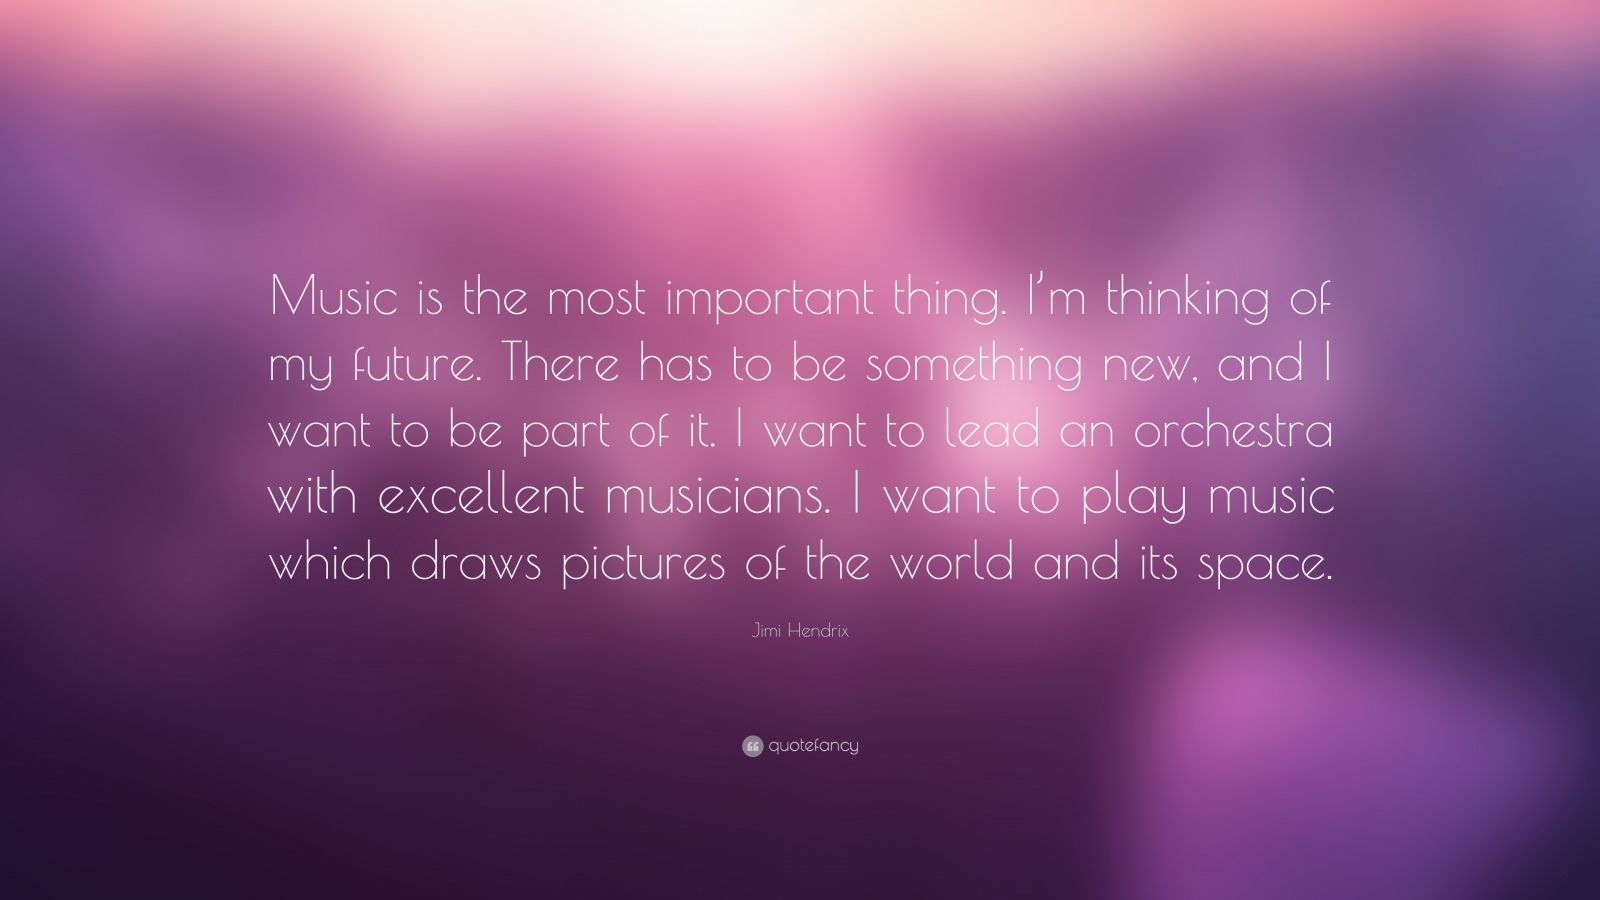 """Jimi Hendrix Quote: """"Music is the most important thing. I'm thinking of my future. There has to be something new, and I want to be part of it. I want to lead an orchestra with excellent musicians. I want to play music which draws pictures of the world and its space."""""""